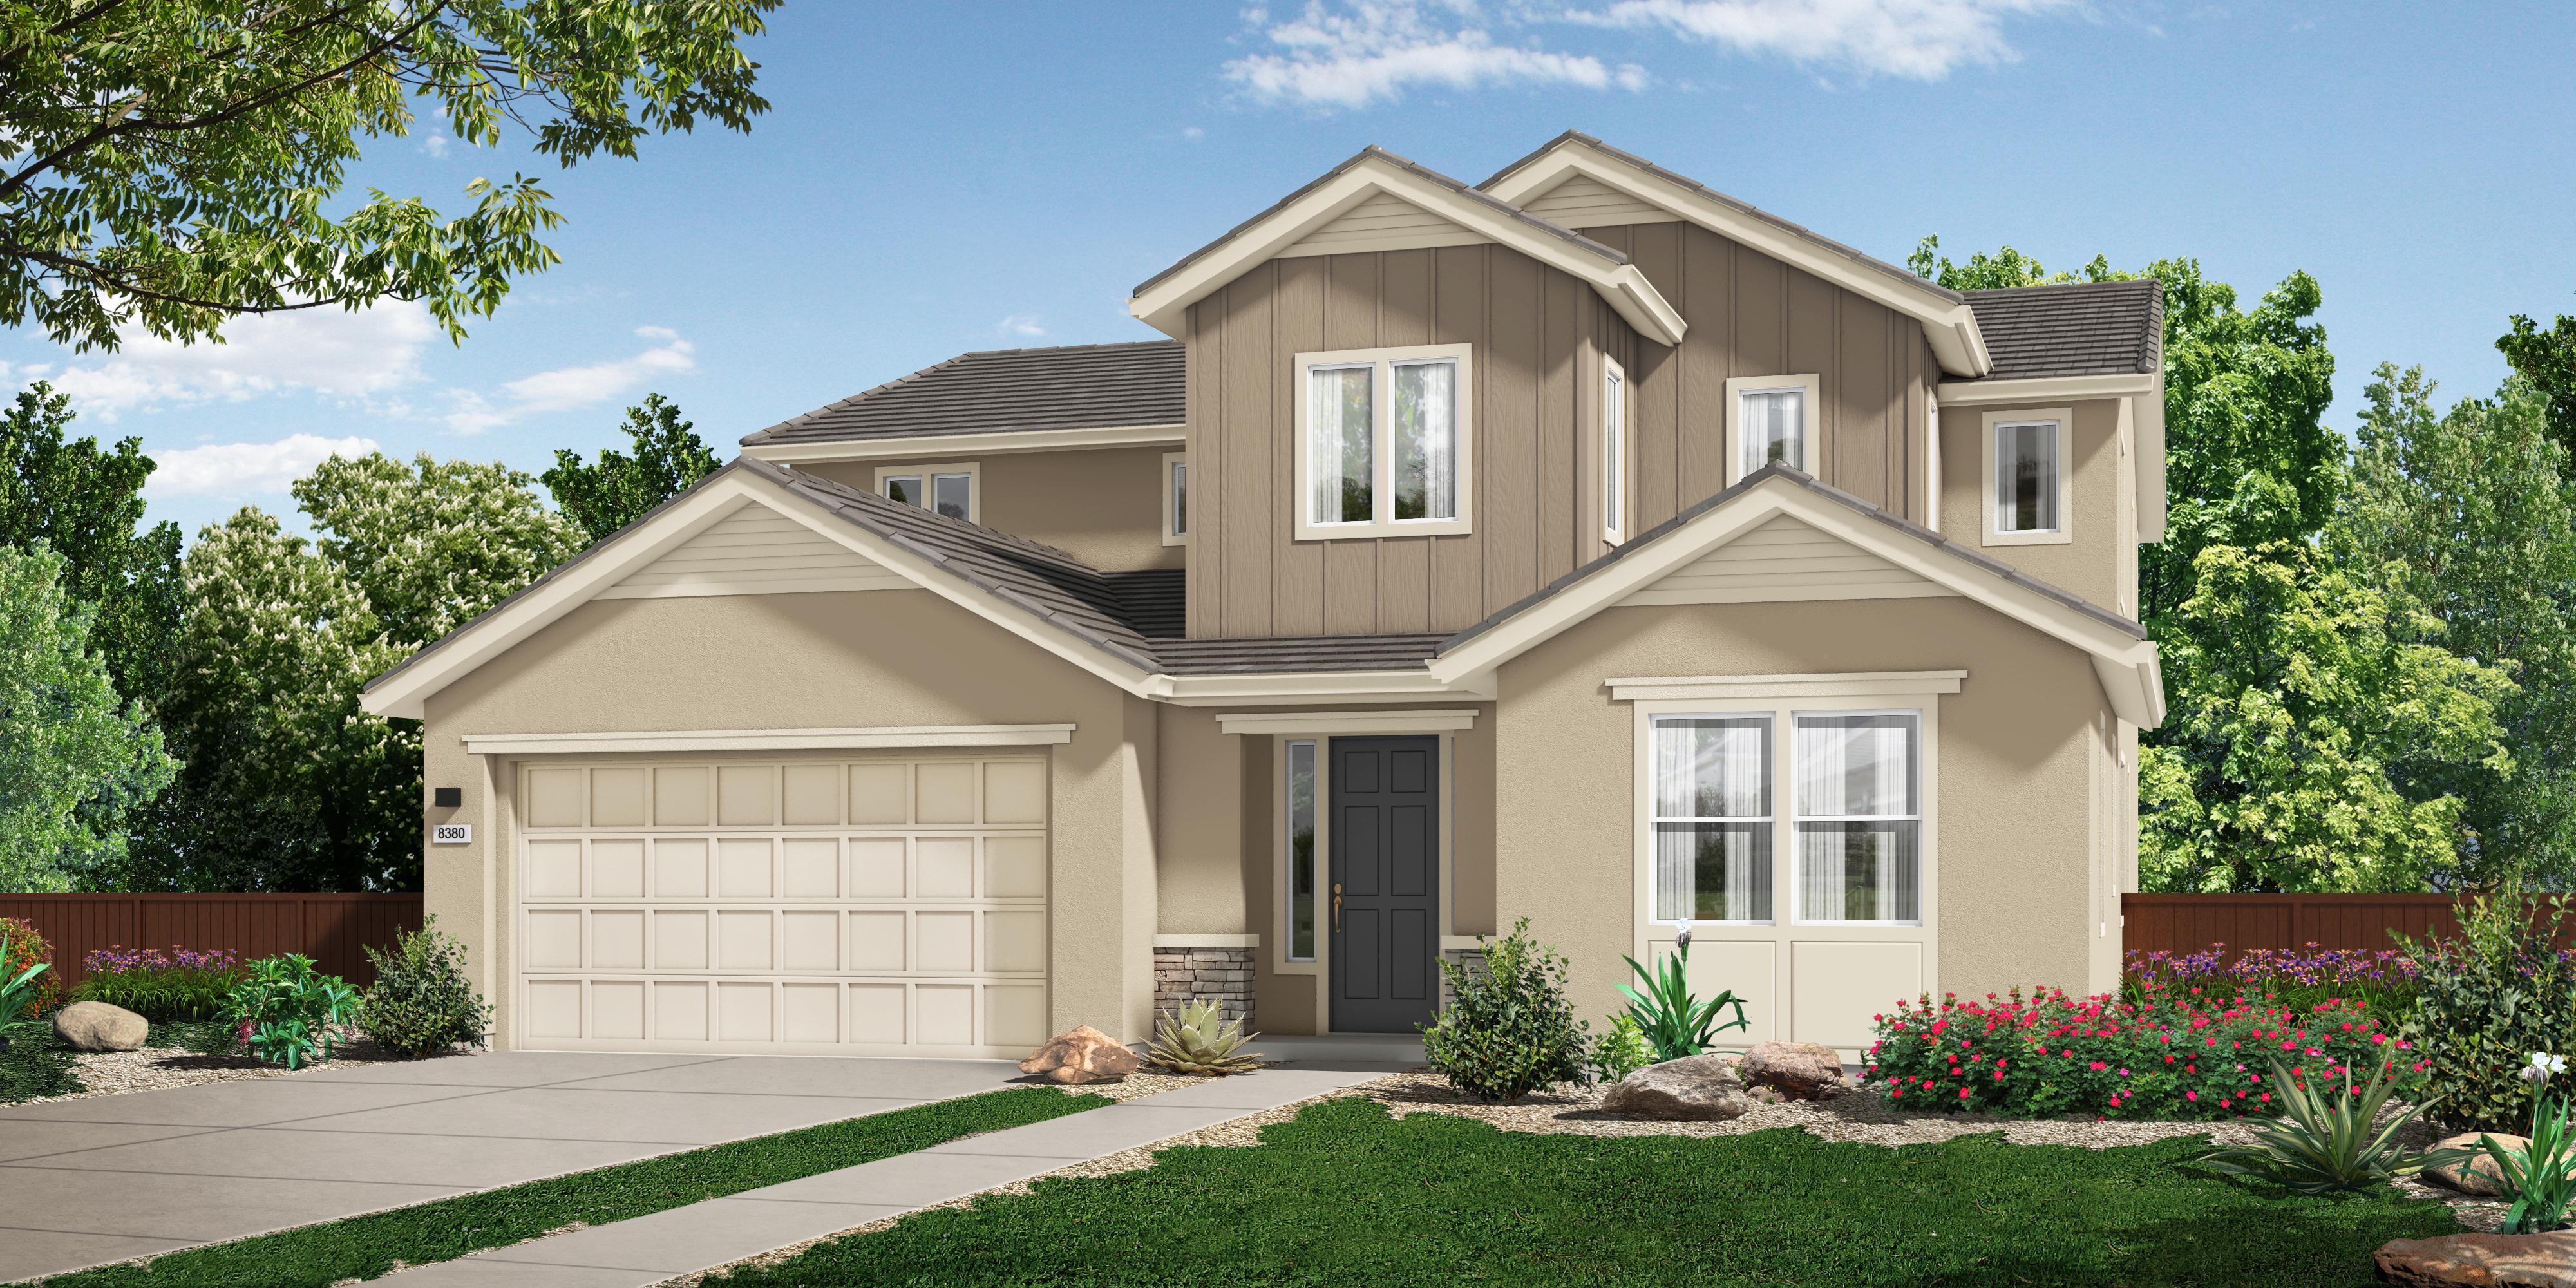 Exterior featured in the M_Residence 4 By Cresleigh Homes in Sacramento, CA